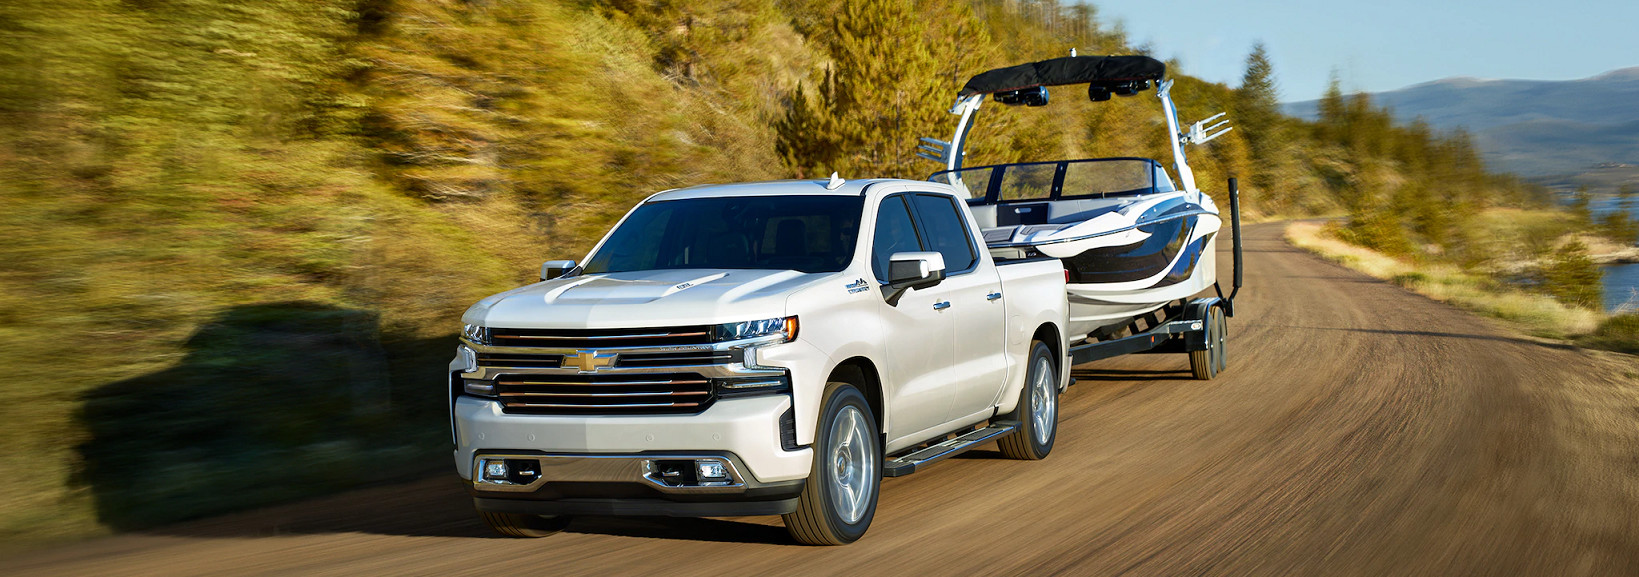 2020 Chevrolet Silverado 1500 Towing Capacity near Escondido, CA